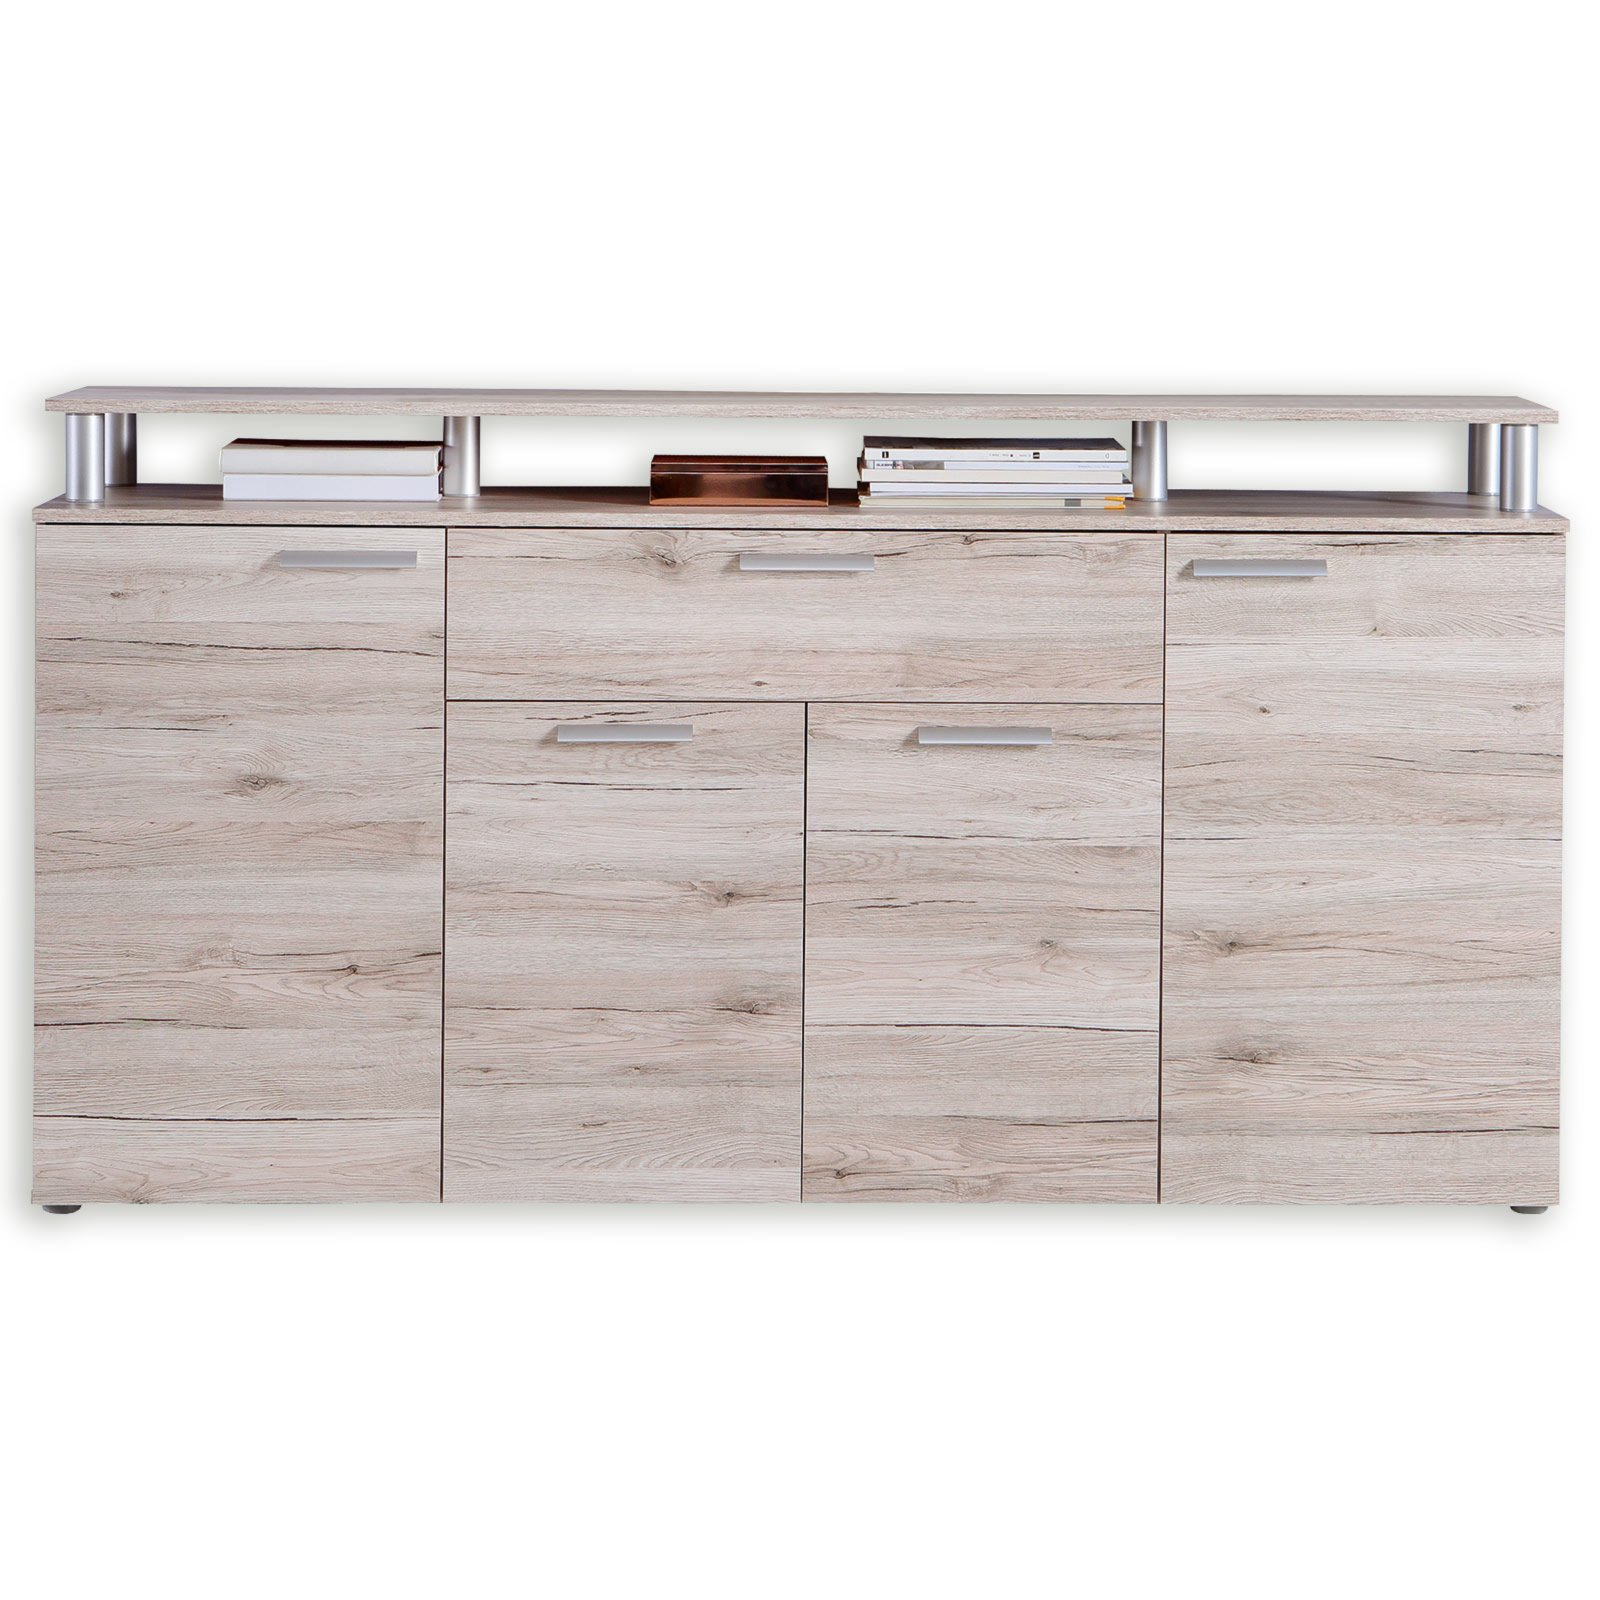 sideboard pablo sandeiche 169 3 cm breit kommoden sideboards m bel roller m belhaus. Black Bedroom Furniture Sets. Home Design Ideas